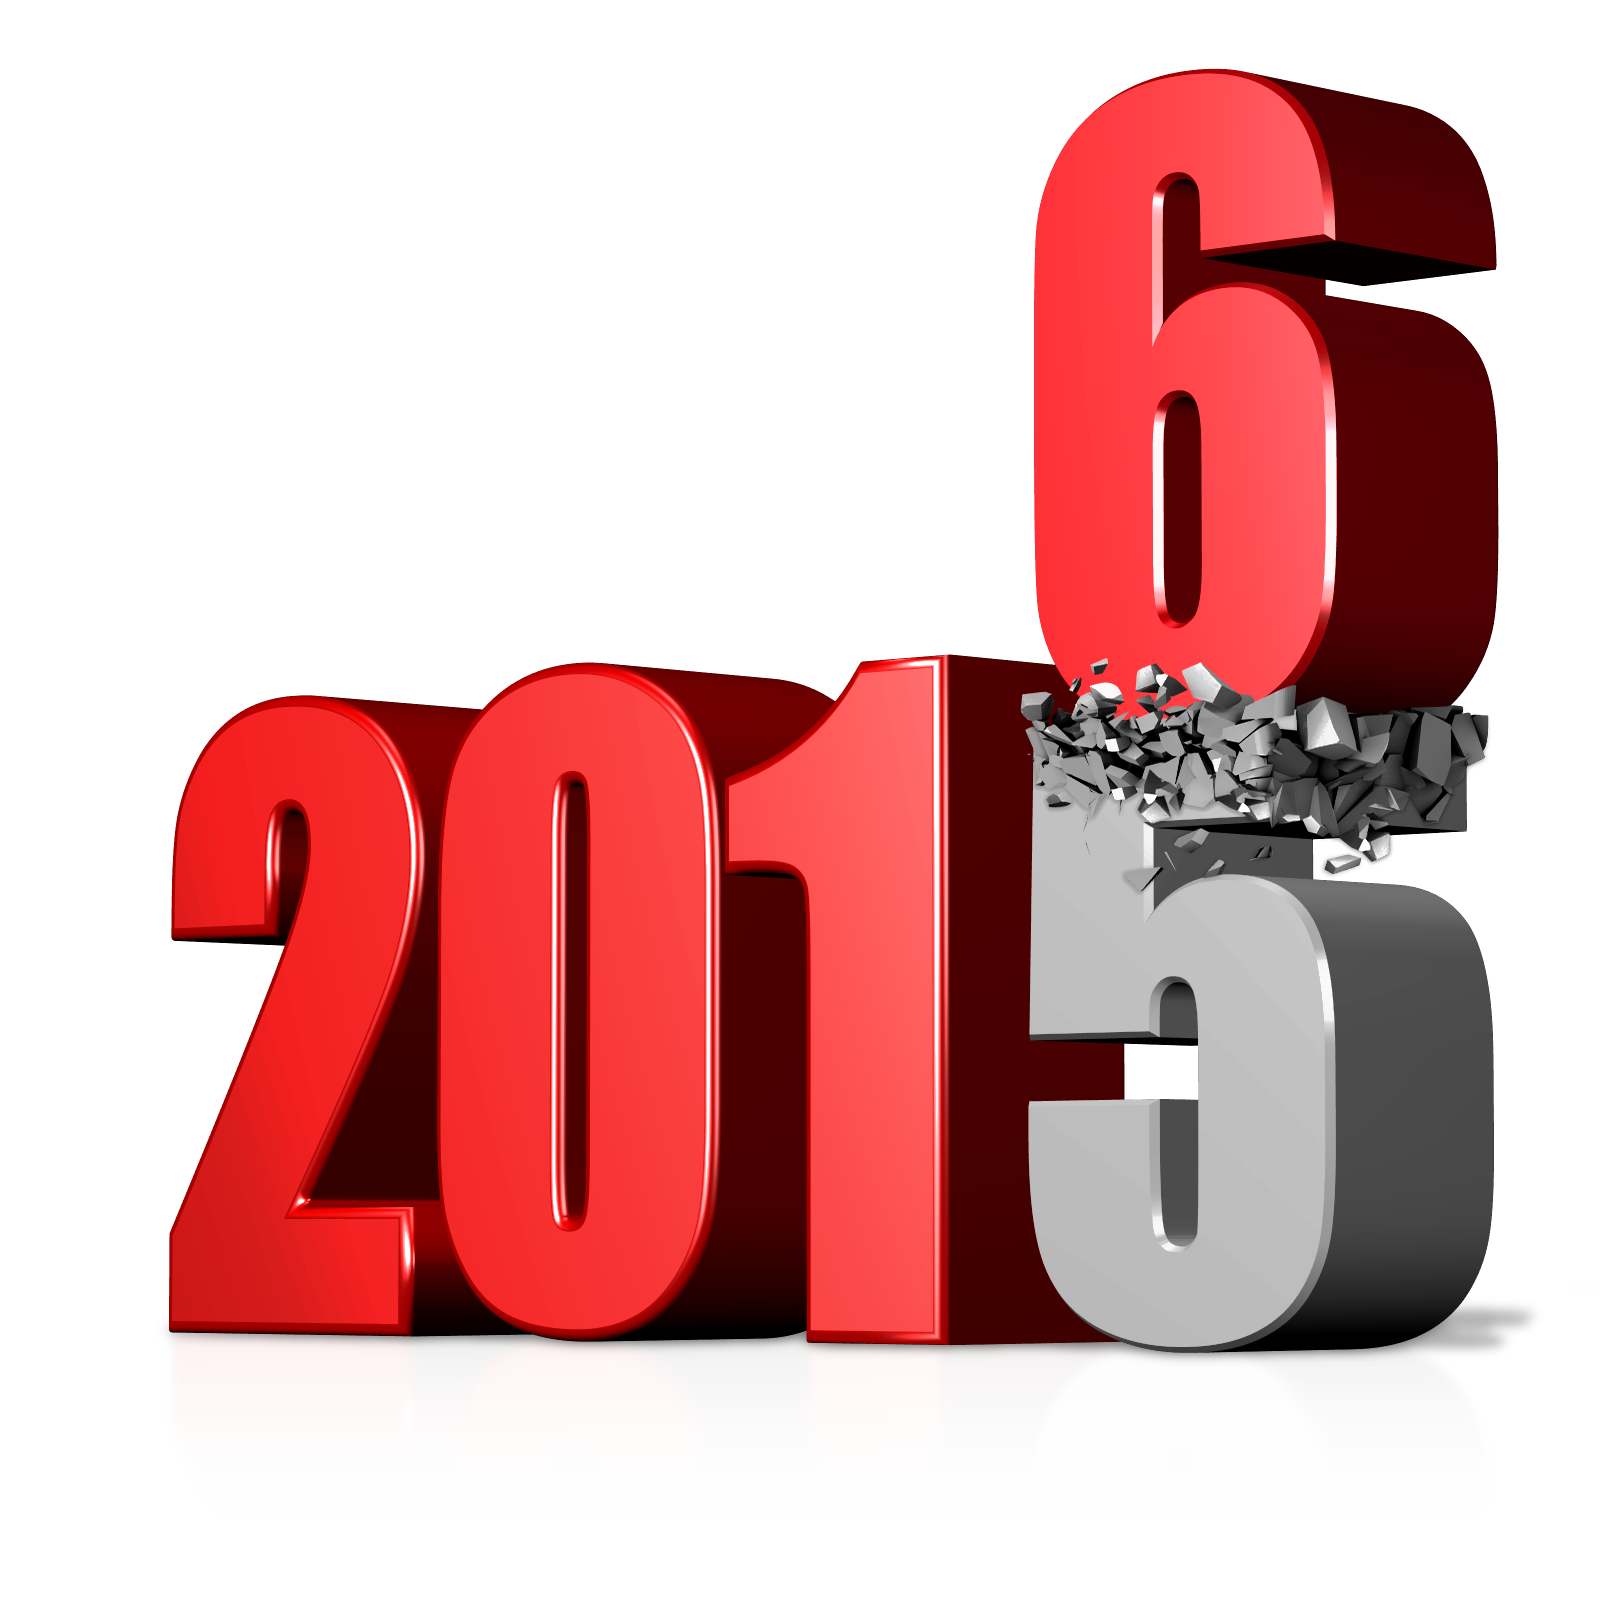 Year 2016 png. Closings today will be